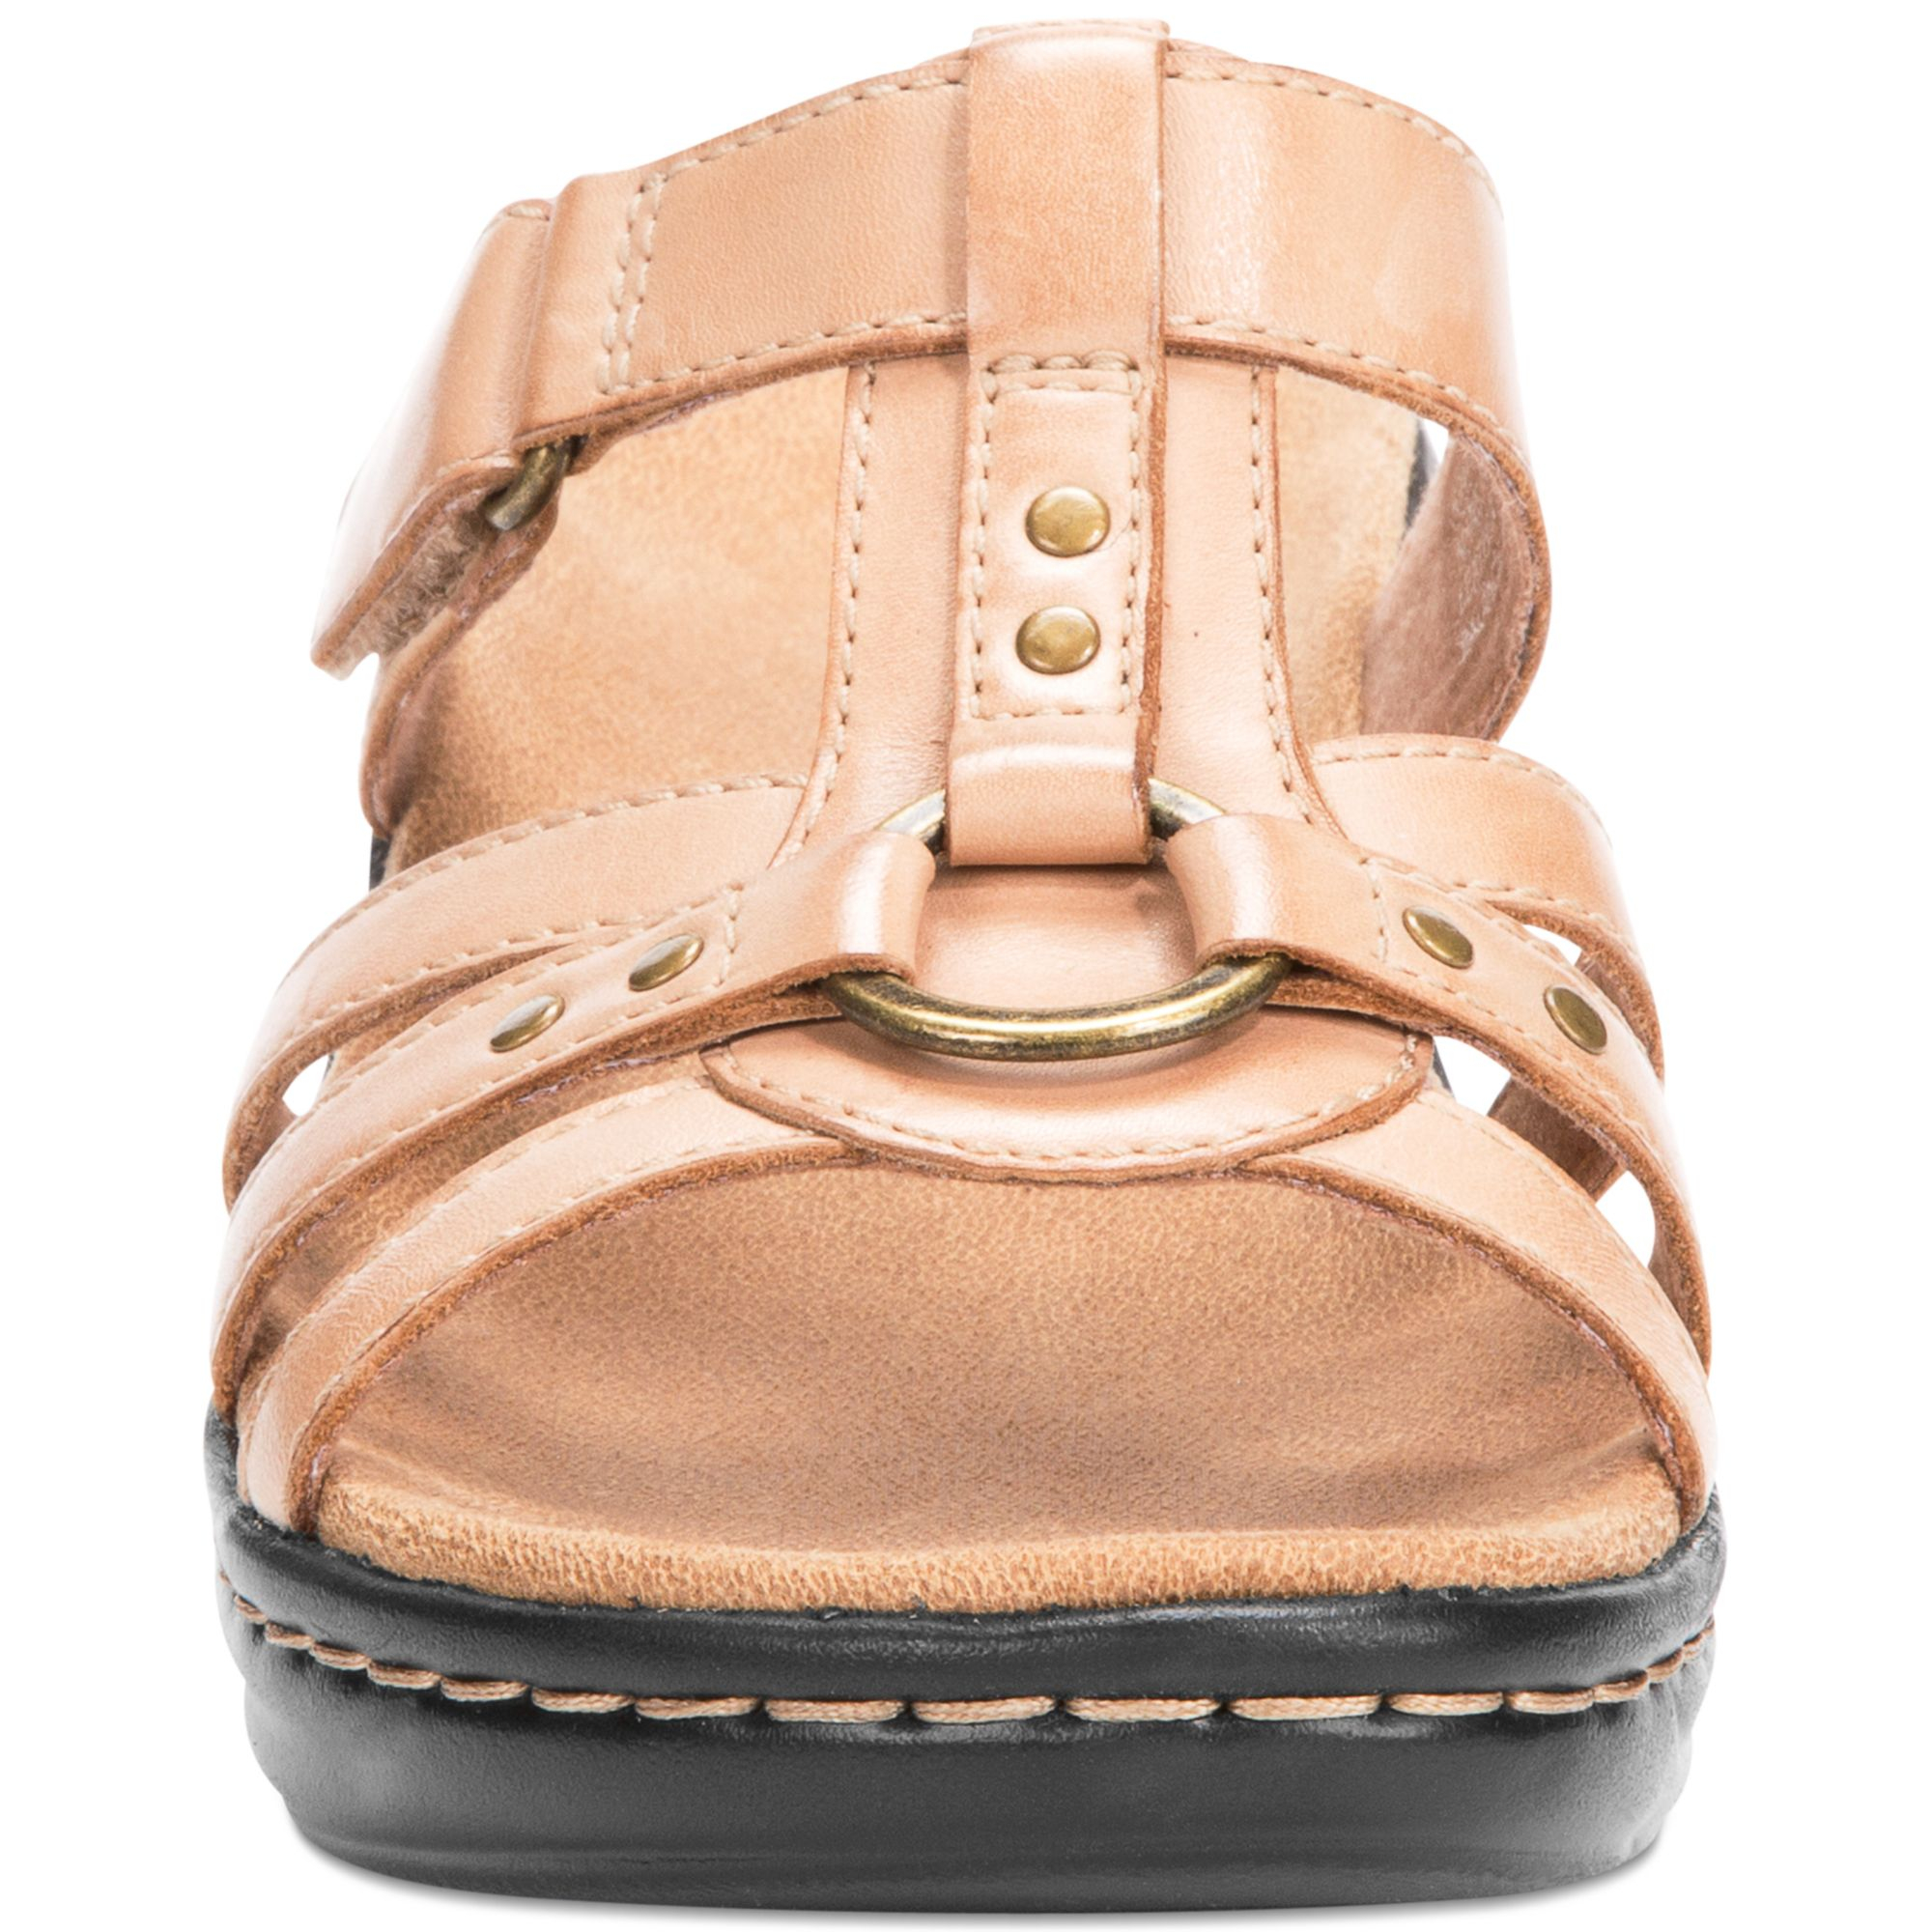 Lyst Clarks Womens Shoes Lexi Jasmine Sandals In Natural